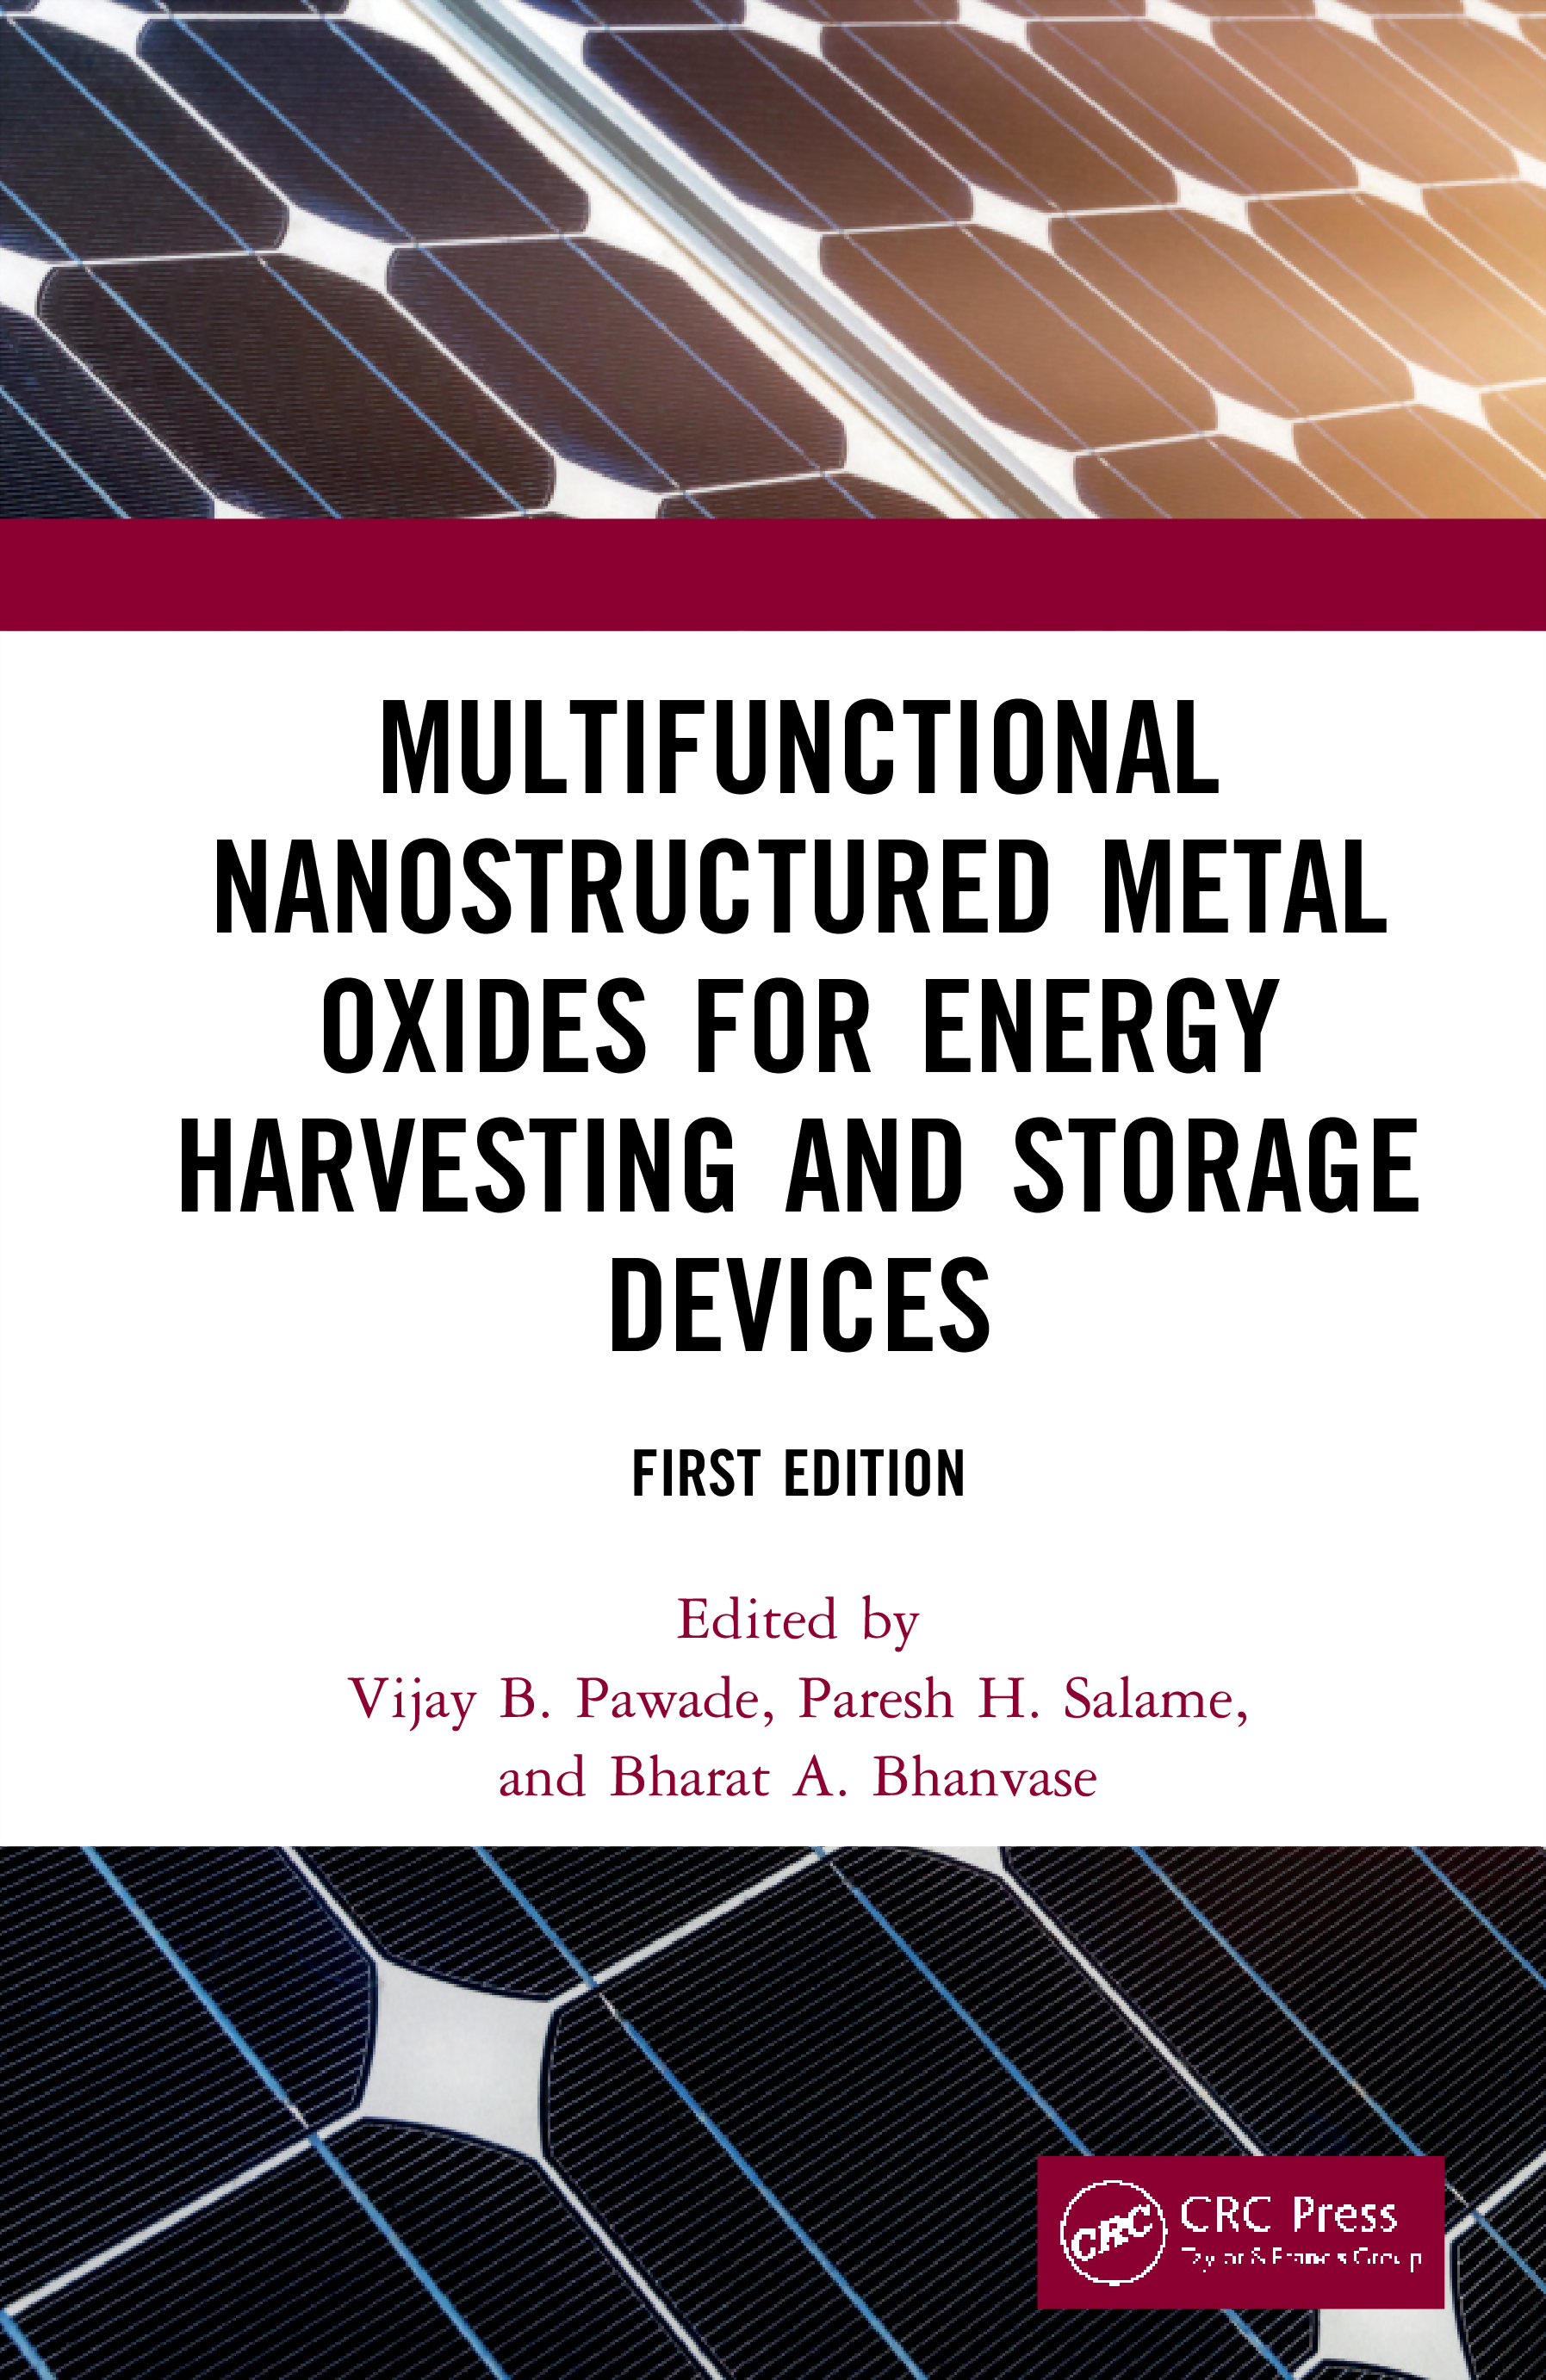 Multifunctional Nanostructured Metal Oxides for Energy Harvesting and Storage Devices book cover